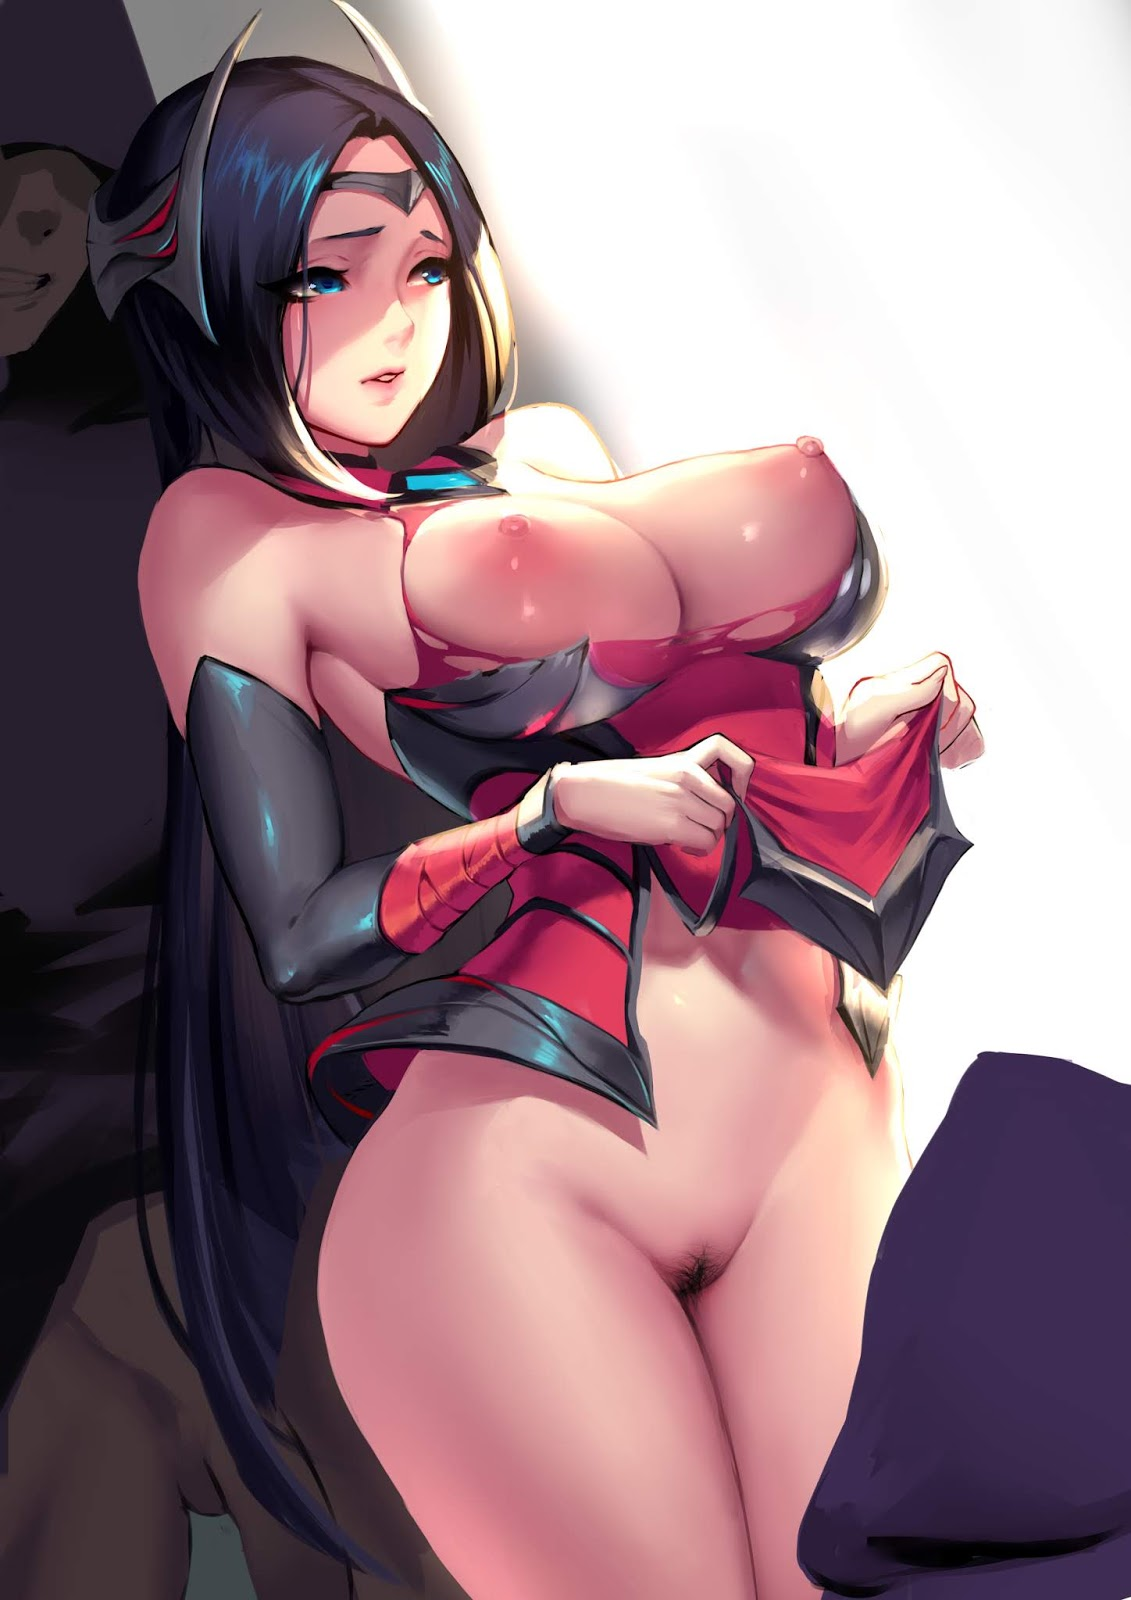 Erelia Upskirt by Cian Yo | League of Legends